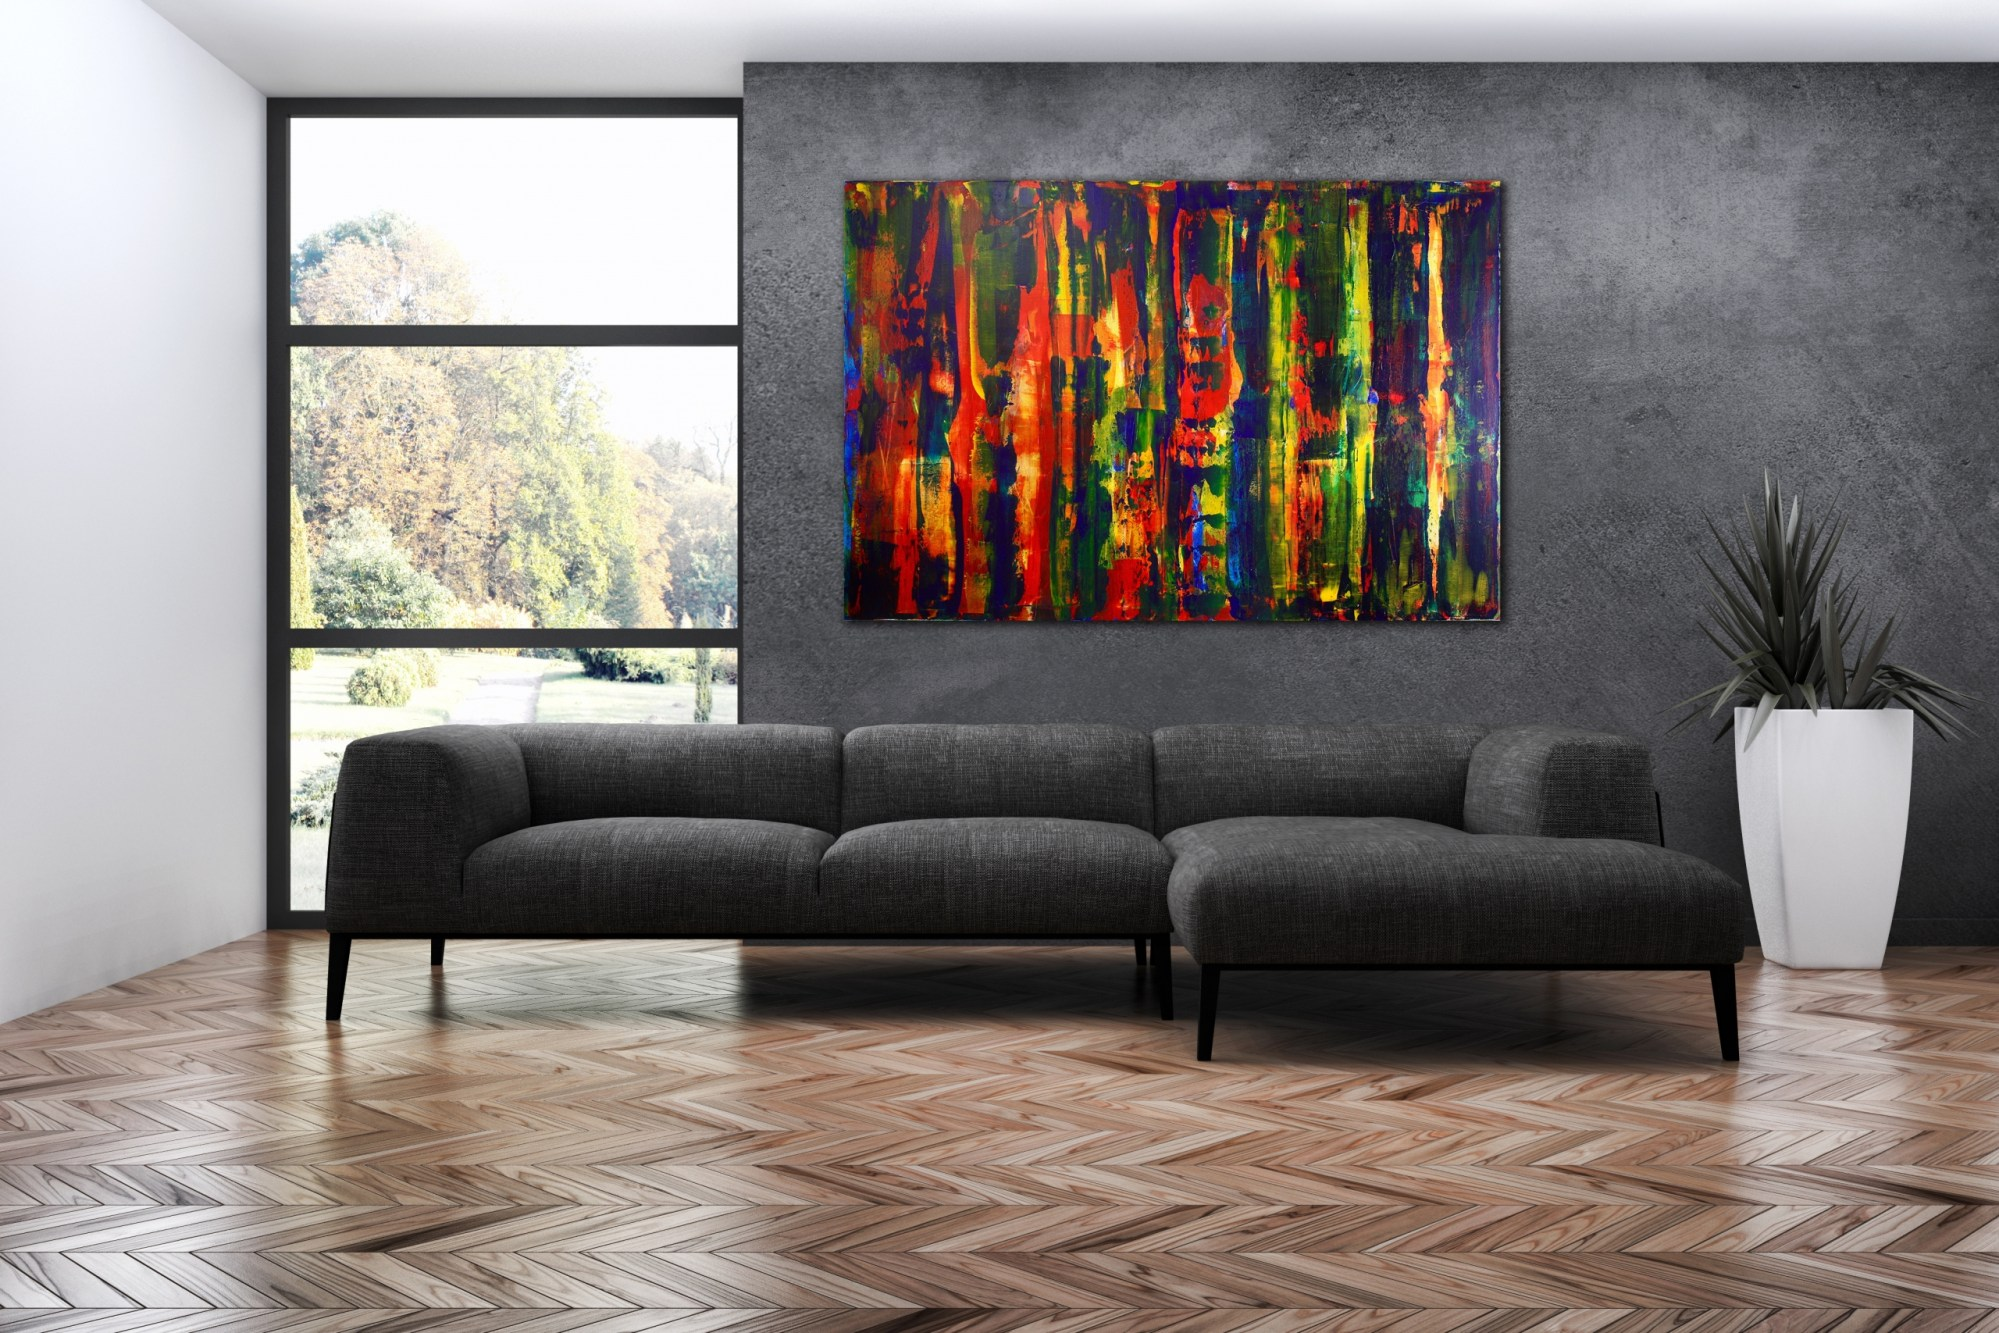 Artist's description: Iridescent warm colorfield with orange and purple iridescent effects. Textured surface, lots of movement and light coming through the dark colors! Very contemplative painting with beautiful color blending. High quality sennelier and Golden acrylics on heavy duty canvas. Statement piece. This work arrives rolled in a heavy duty tube. You can take it to your favorite frame shop to have it put on stretcher bars and it's ready to hang! Additional Info: I include a certificate of authenticity that lists the materials as well as when the painting was completed. Fine high quality materials such as Golden and Sennelier products are used and UV protective enamel for sunlight protection. Each painting is carefully packed and padded for a safe delivery. Paintings shipped with a tracking number. Please send me a message for any further questions! Materials used: Plaster, gesso, Golden, Sennelier and Liquitex acrylics and UV protected gloss coating. Flares- Bold Landscape (2015) Acrylic painting by Nestor Toro